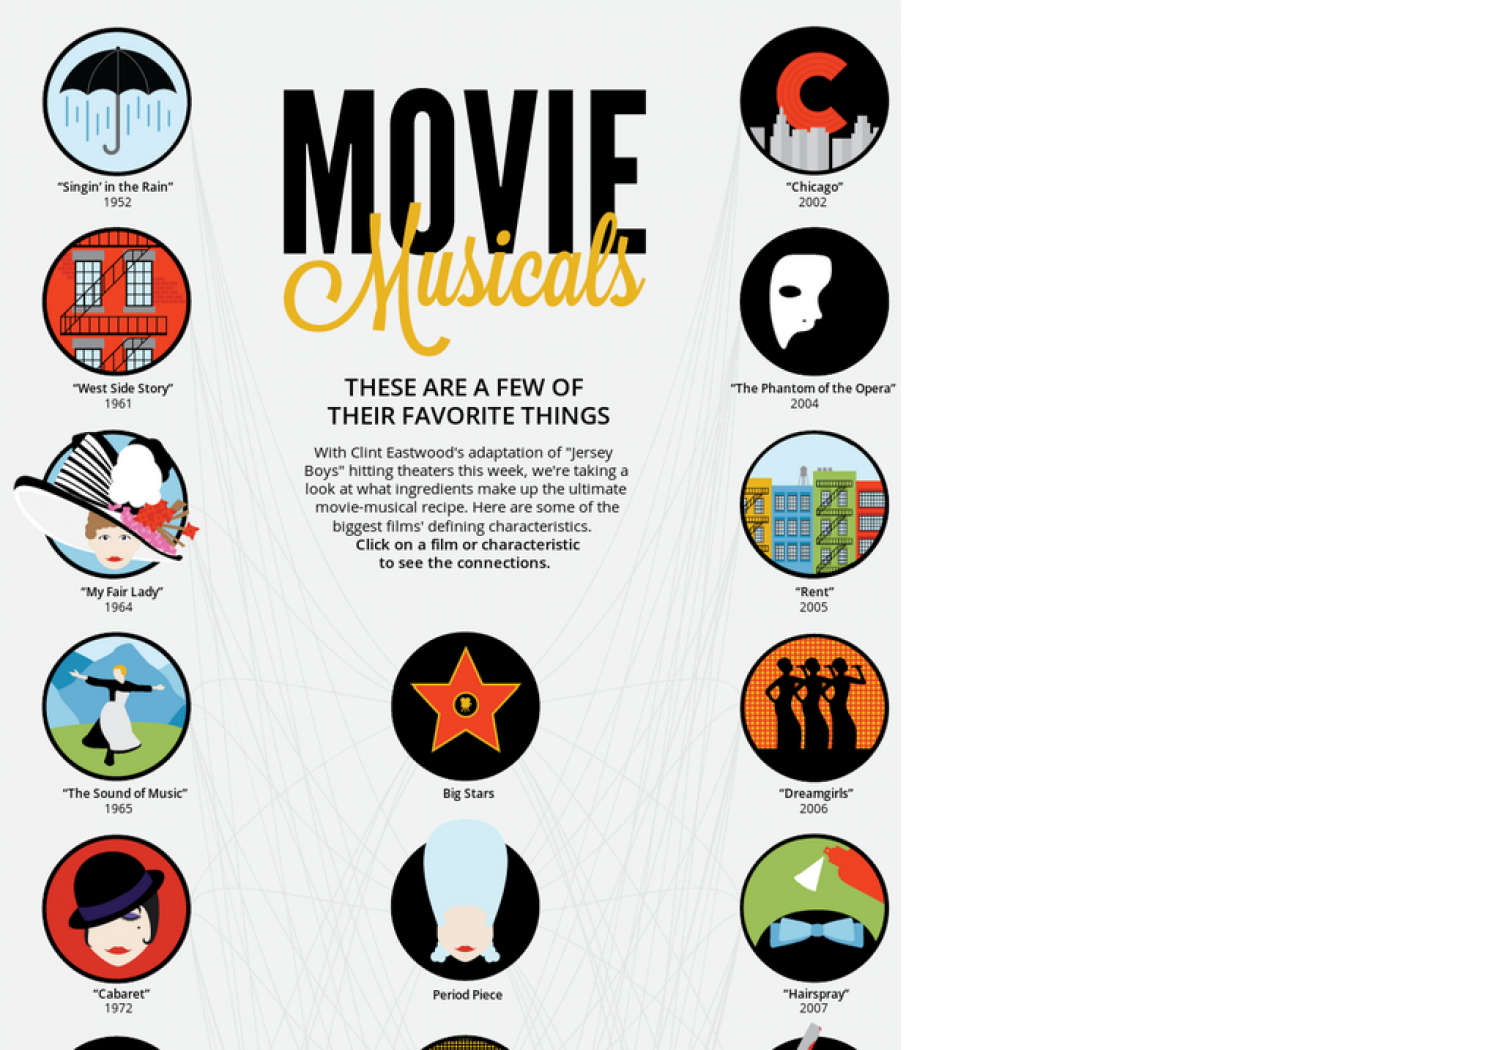 Movie Musicals: These are a Few of Their Favorite Things Infographic